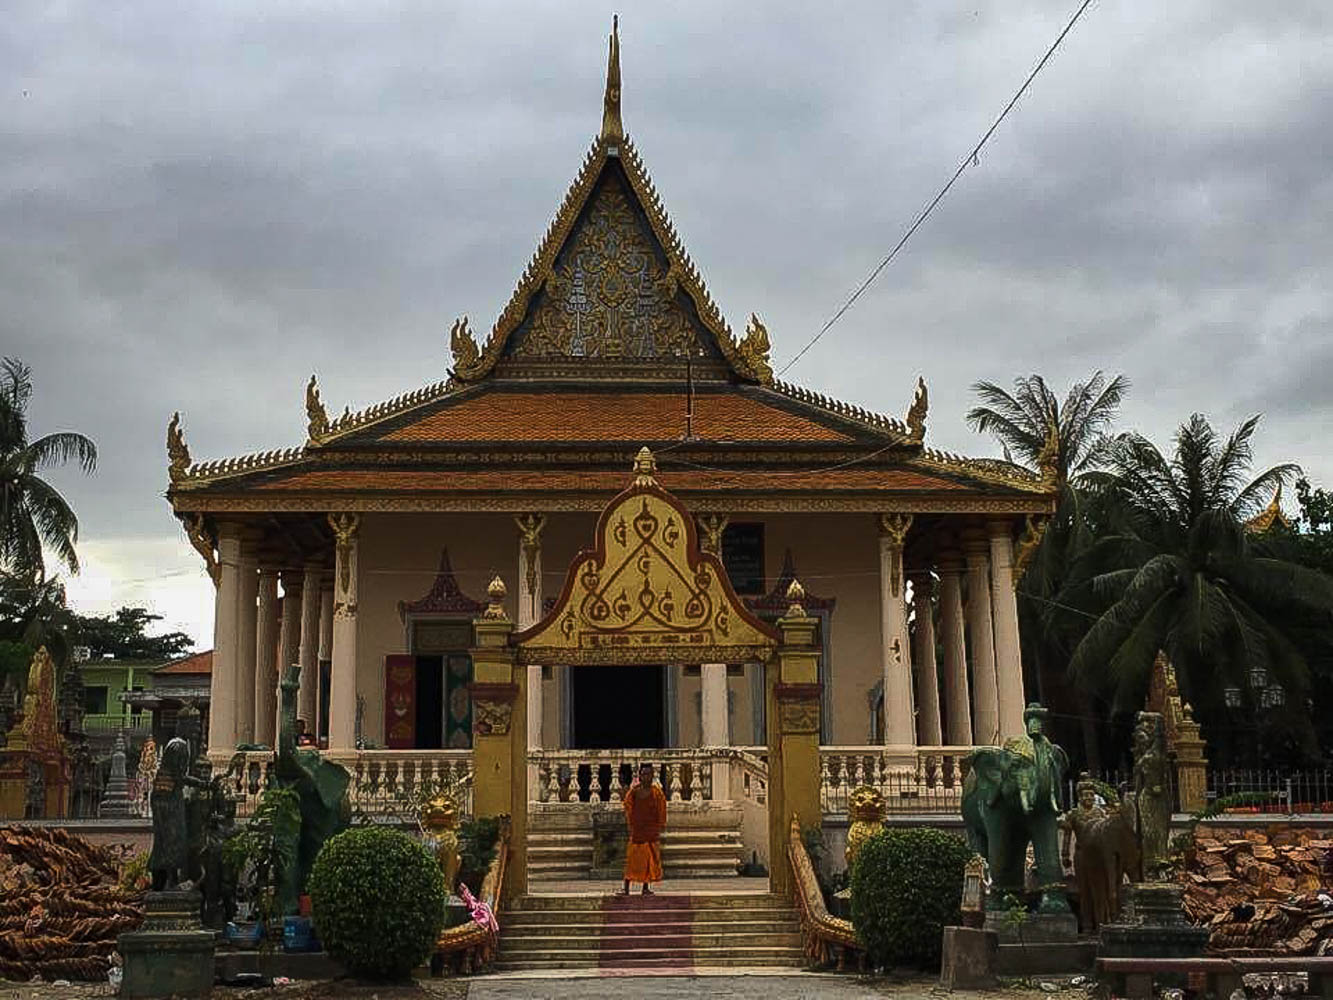 Monk and temple in Phnom Penh